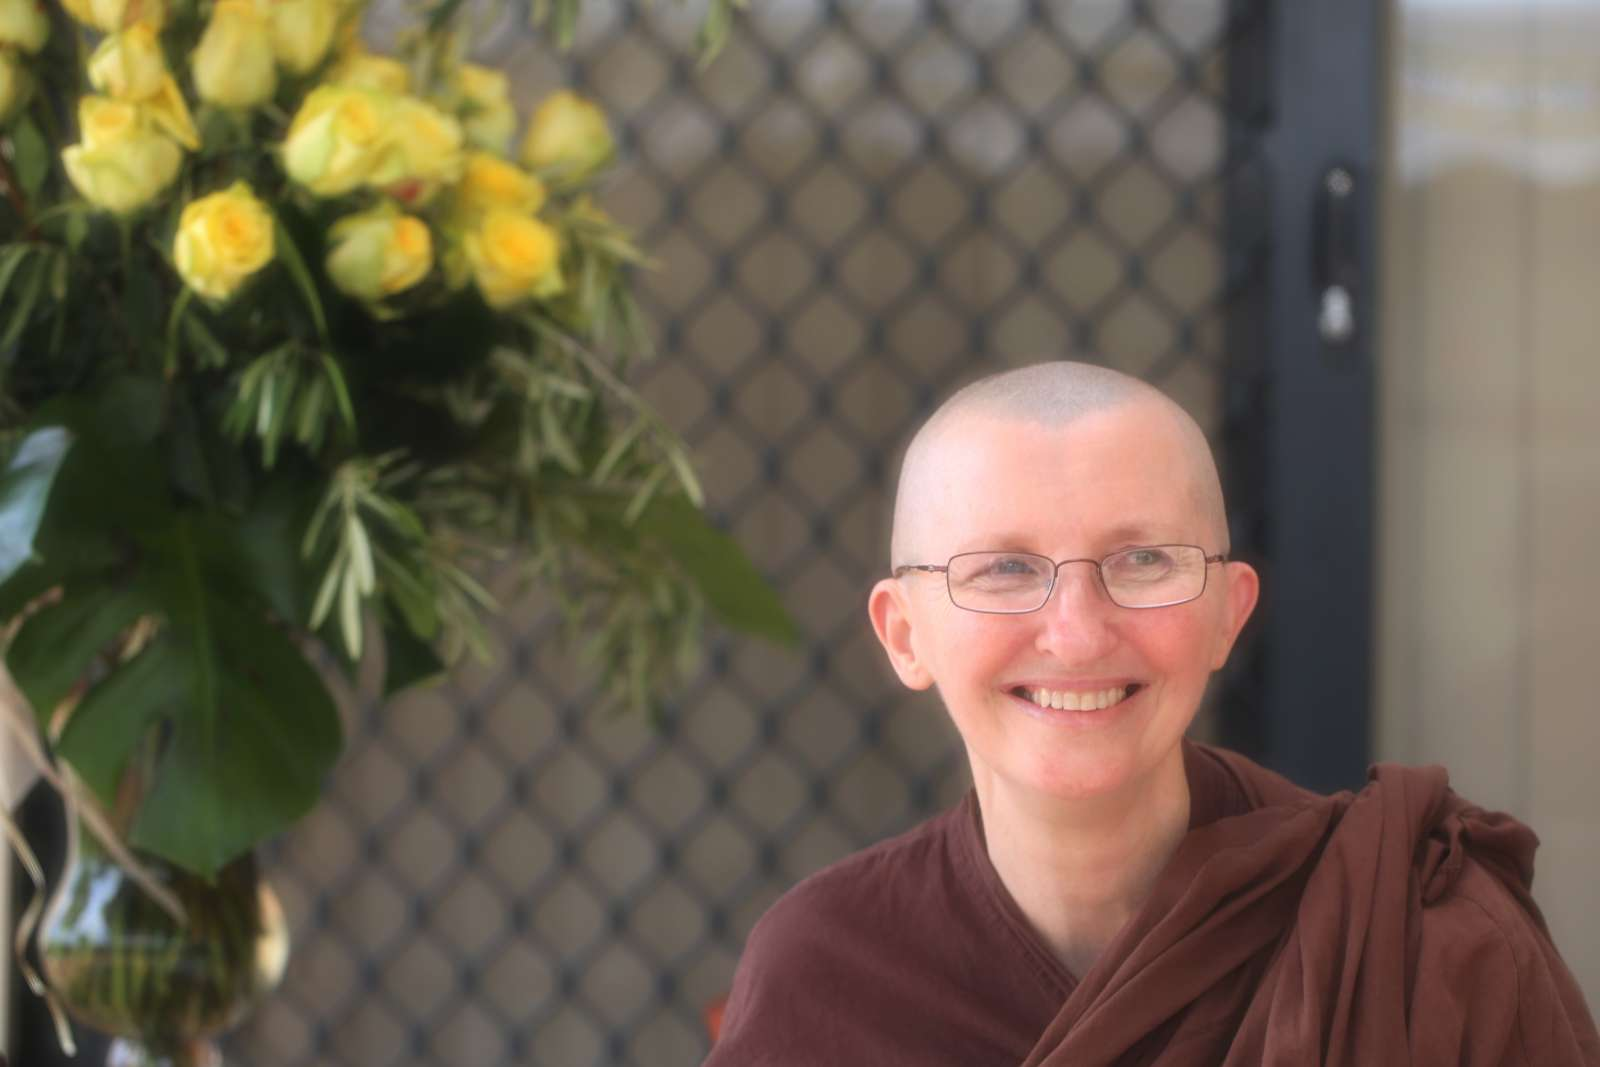 twin bridges buddhist personals Diana kerievsky is on facebook join facebook to connect with diana kerievsky and others you may know facebook gives people the power to share and makes.